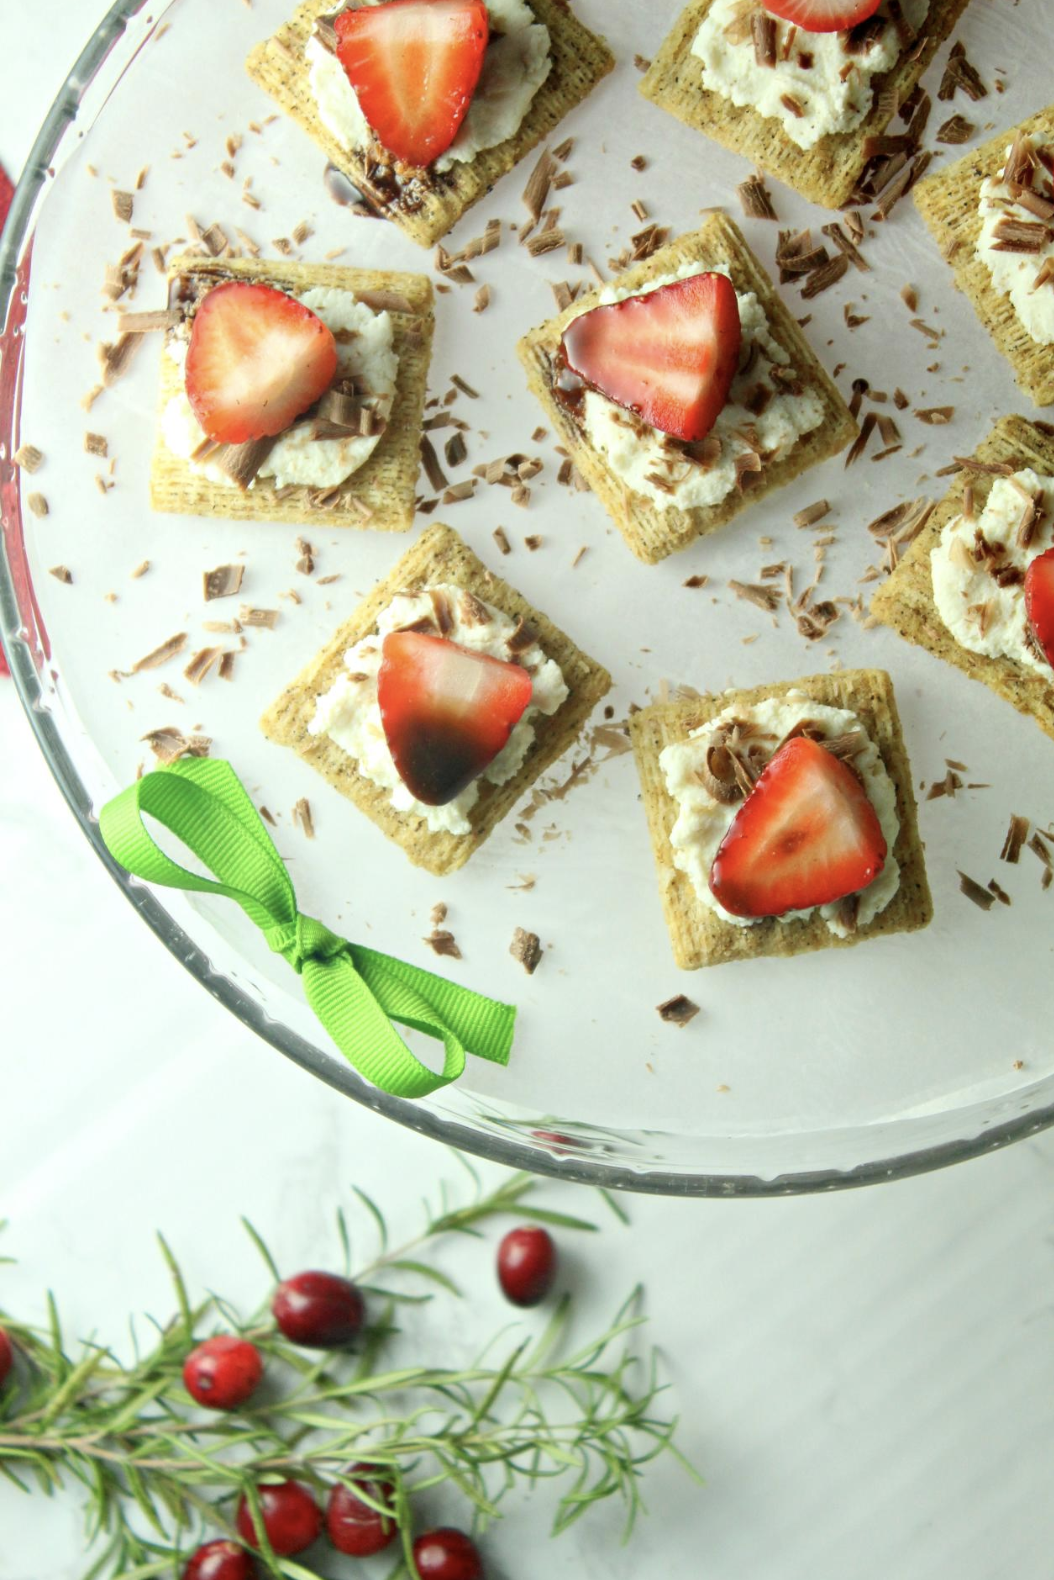 Need a quick party appetizer or snack that's perfect for your next holiday party? Try my recipe for Triscuit Cheese and Chocolate-Dipped Strawberries! #HolidaysWithTriscuit #IC #AD